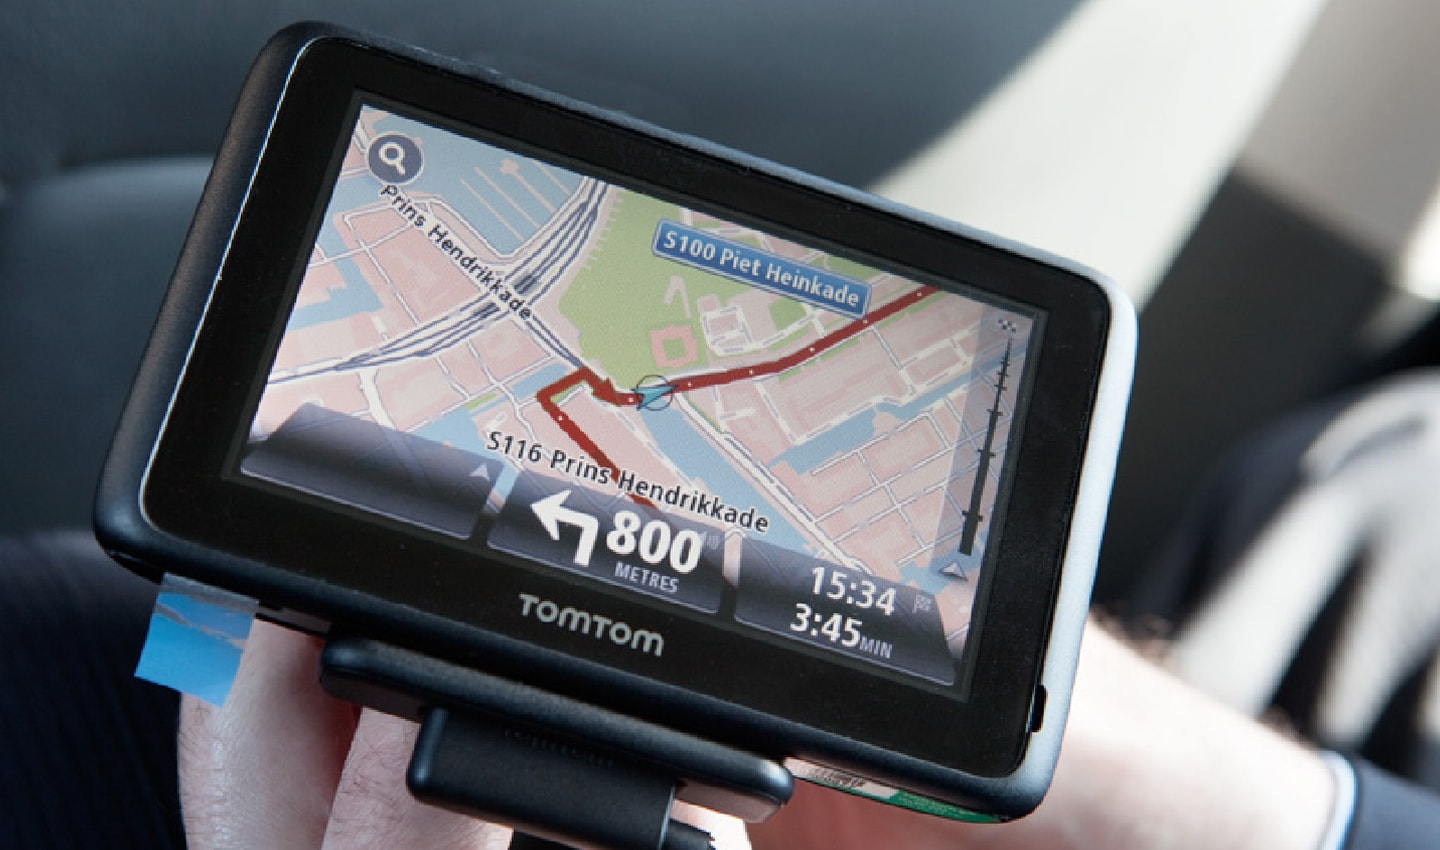 The TomTom GO was a neat, accessibly, and affordable device